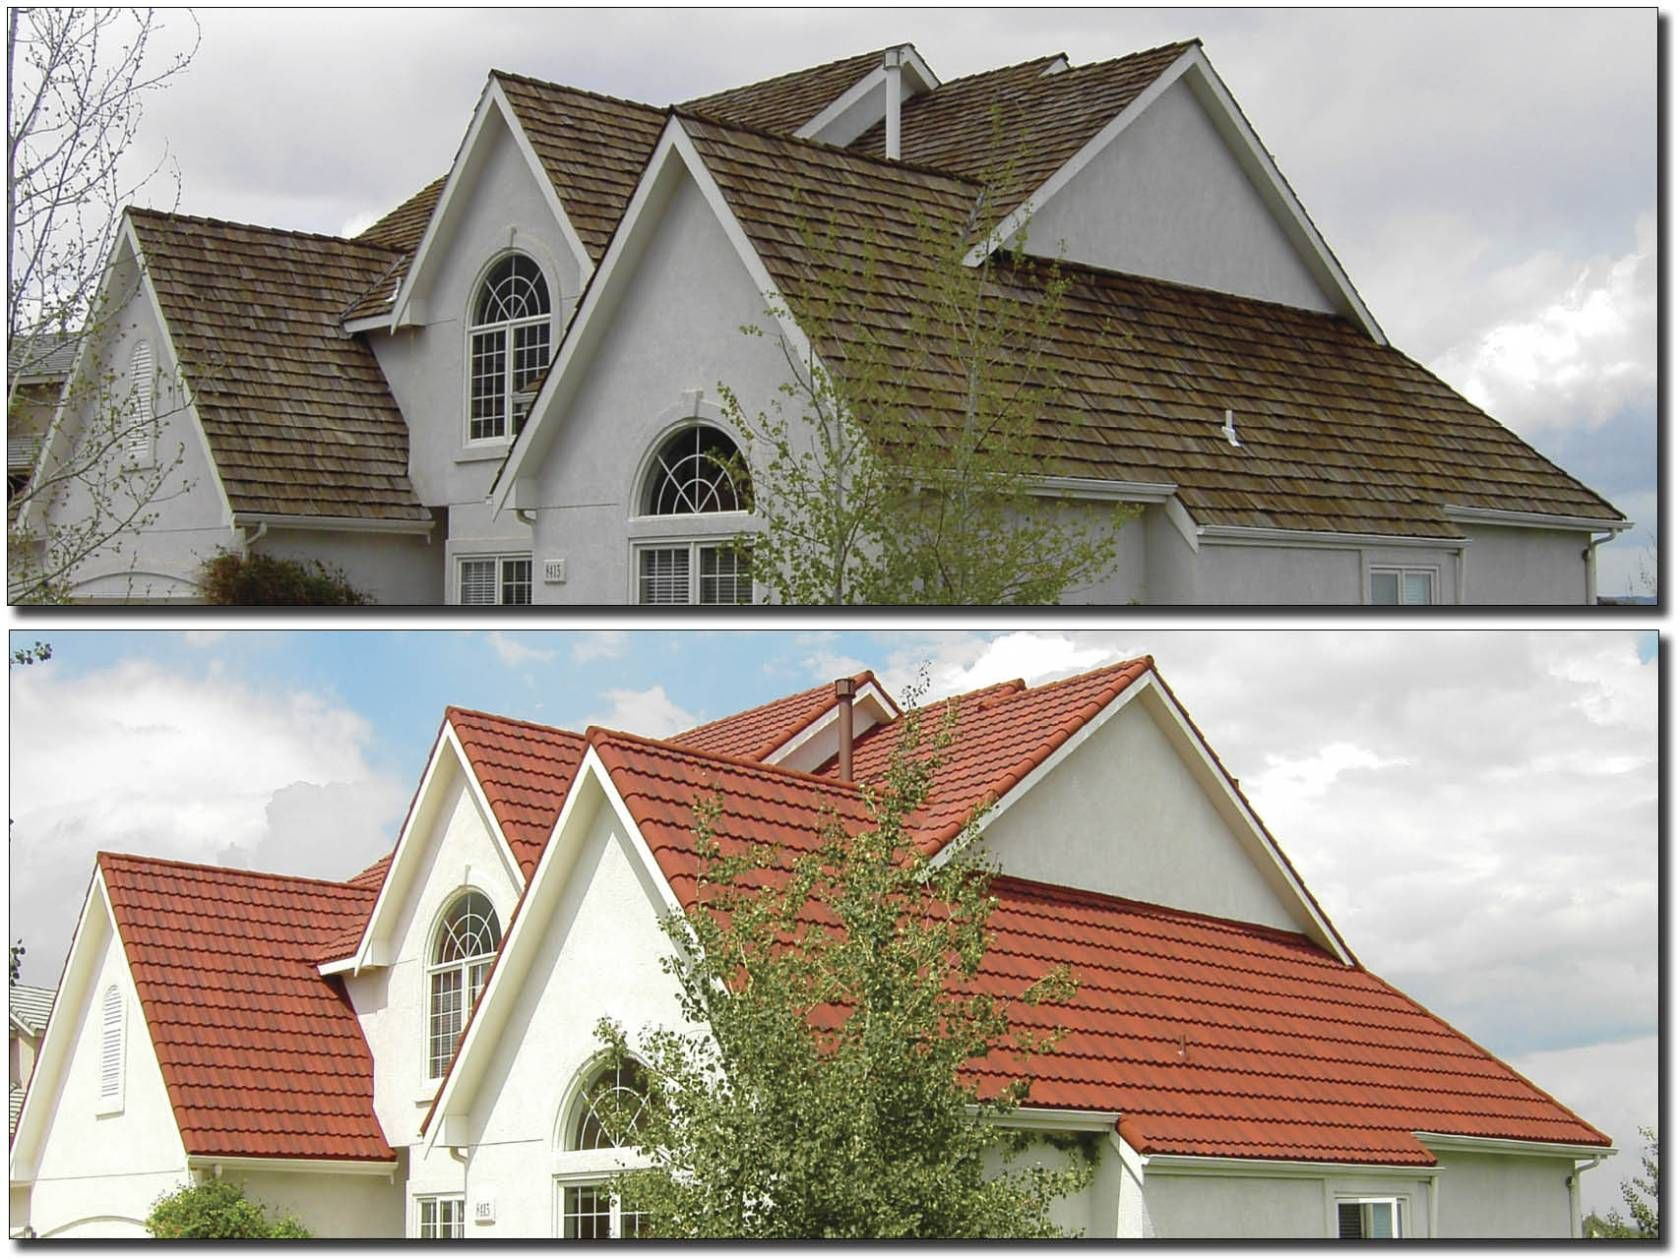 Concrete Vs Clay Roof Tile Cost Pros Cons Of Tile Roofs 2018 Roof Architecture Roofing Roof Repair Diy